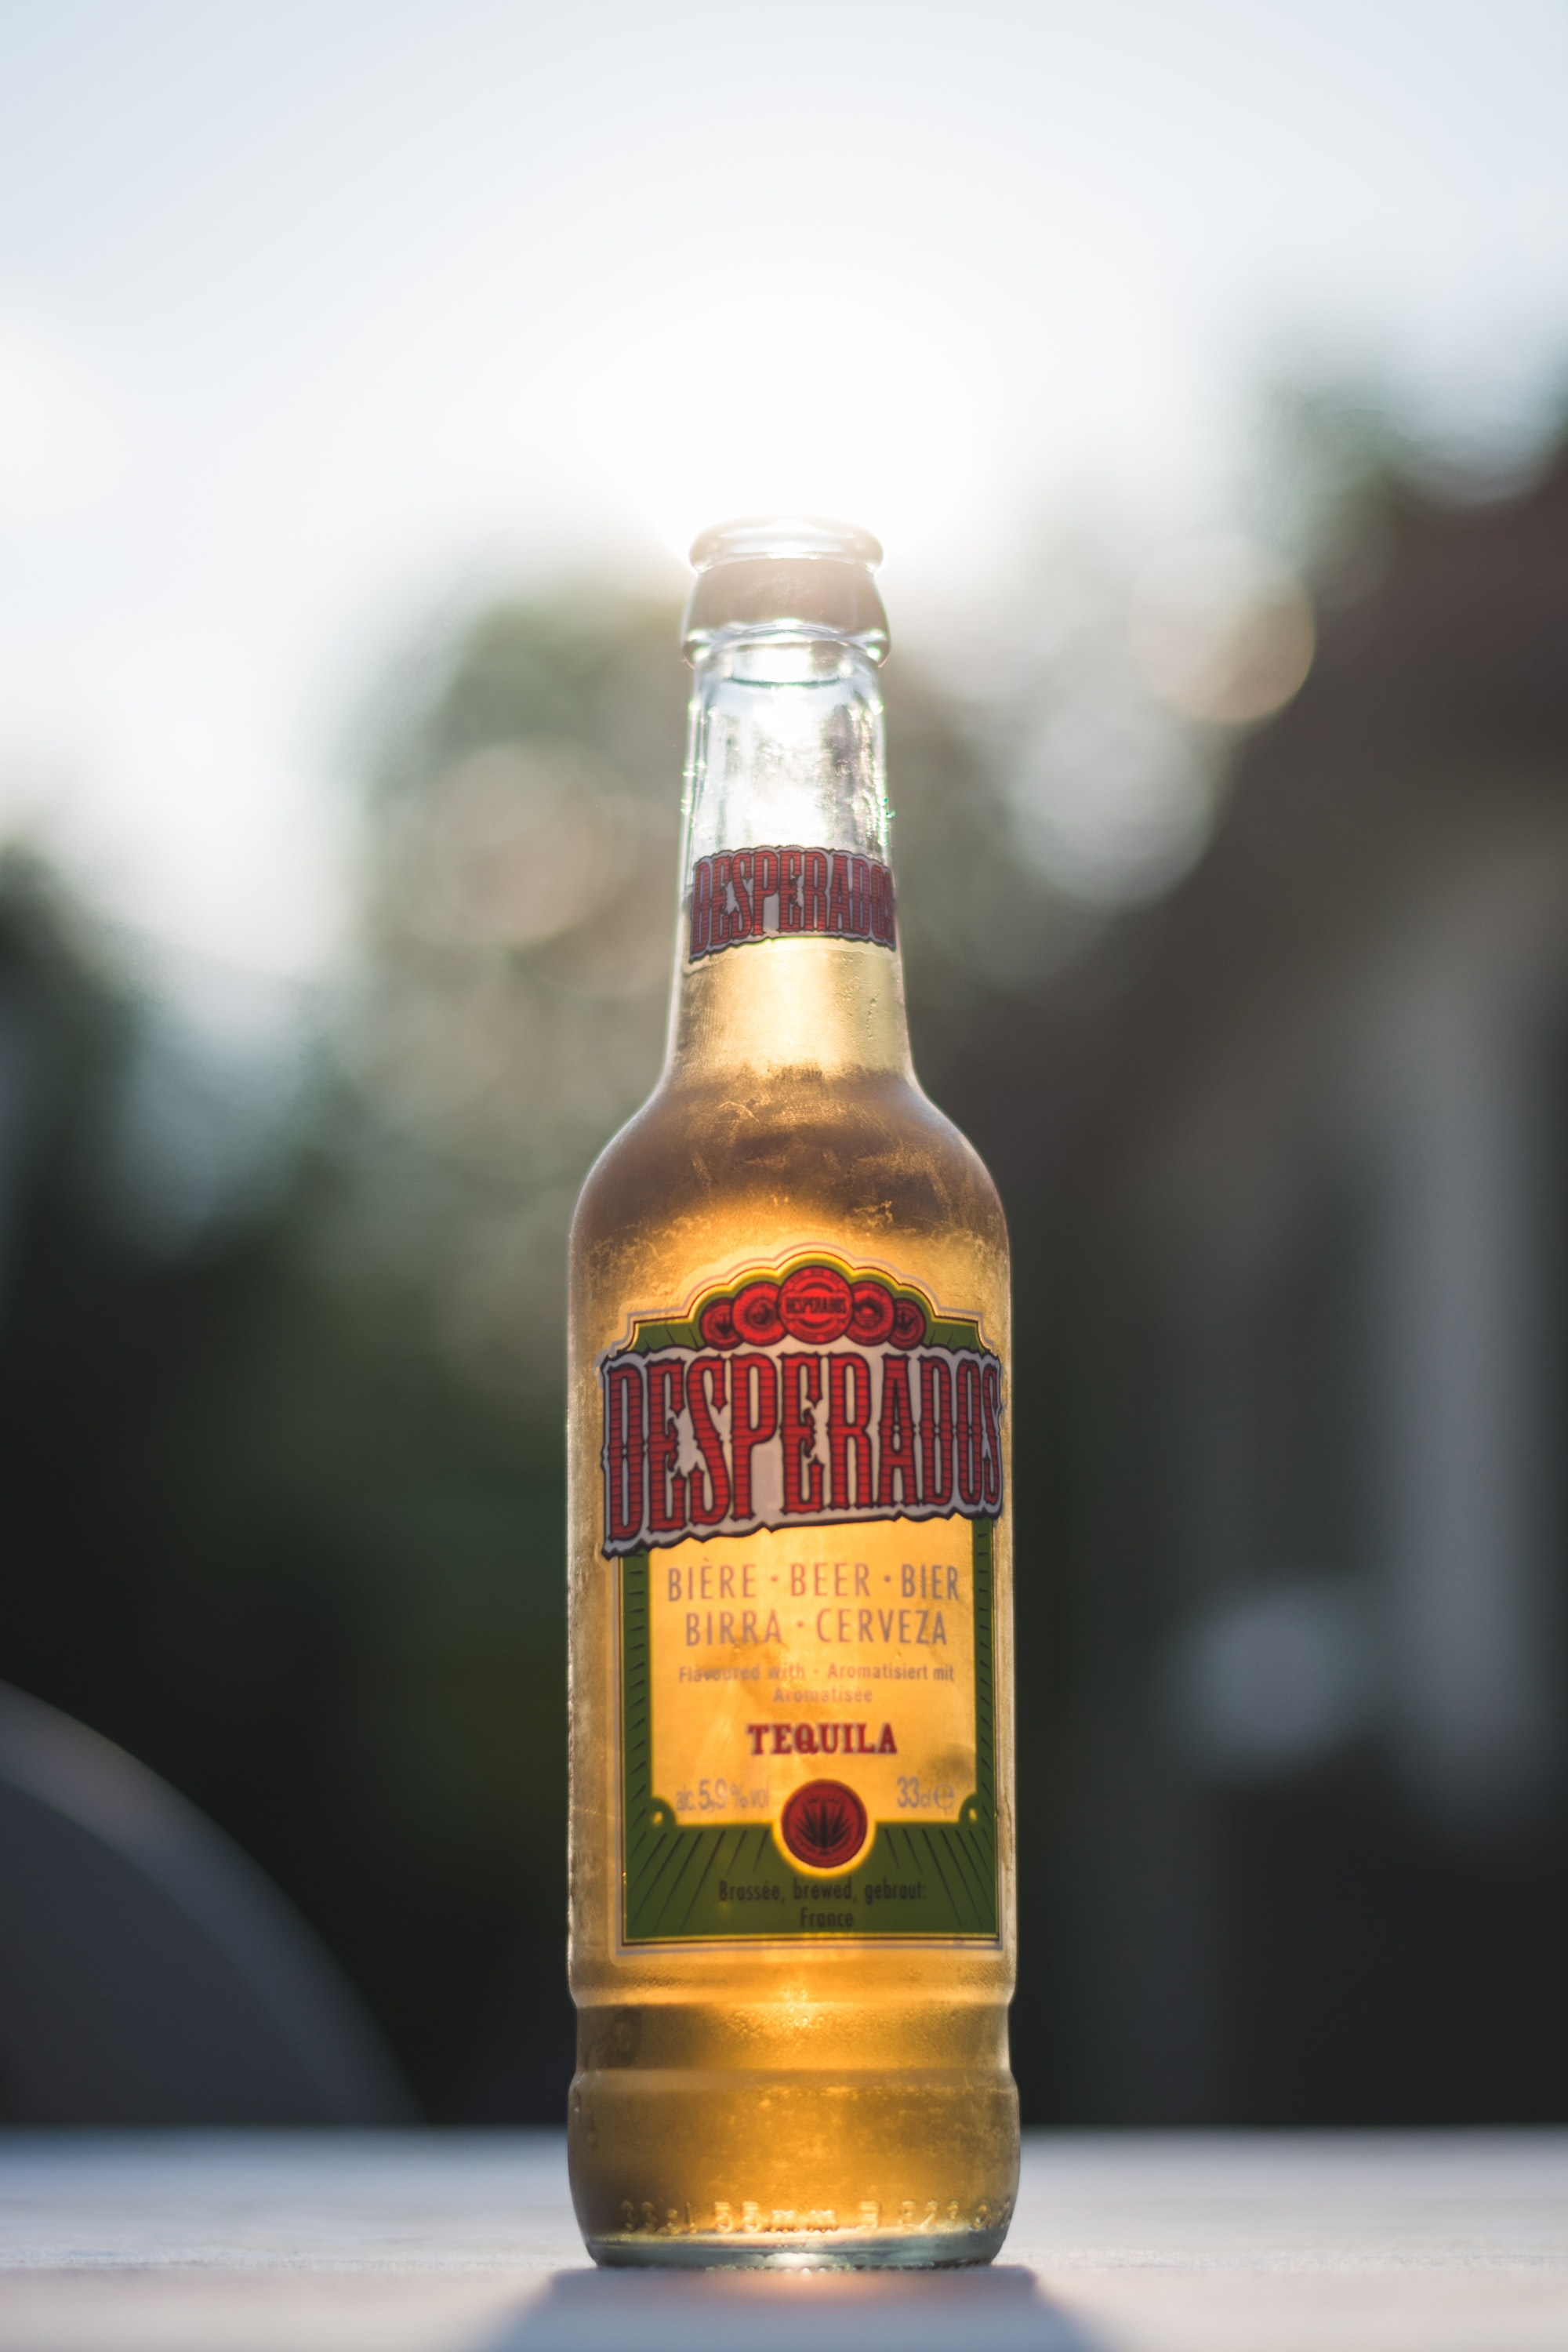 Desperados Tequila Bottle Selective Focus Photography Photo Free Bottle Image On Unsplash